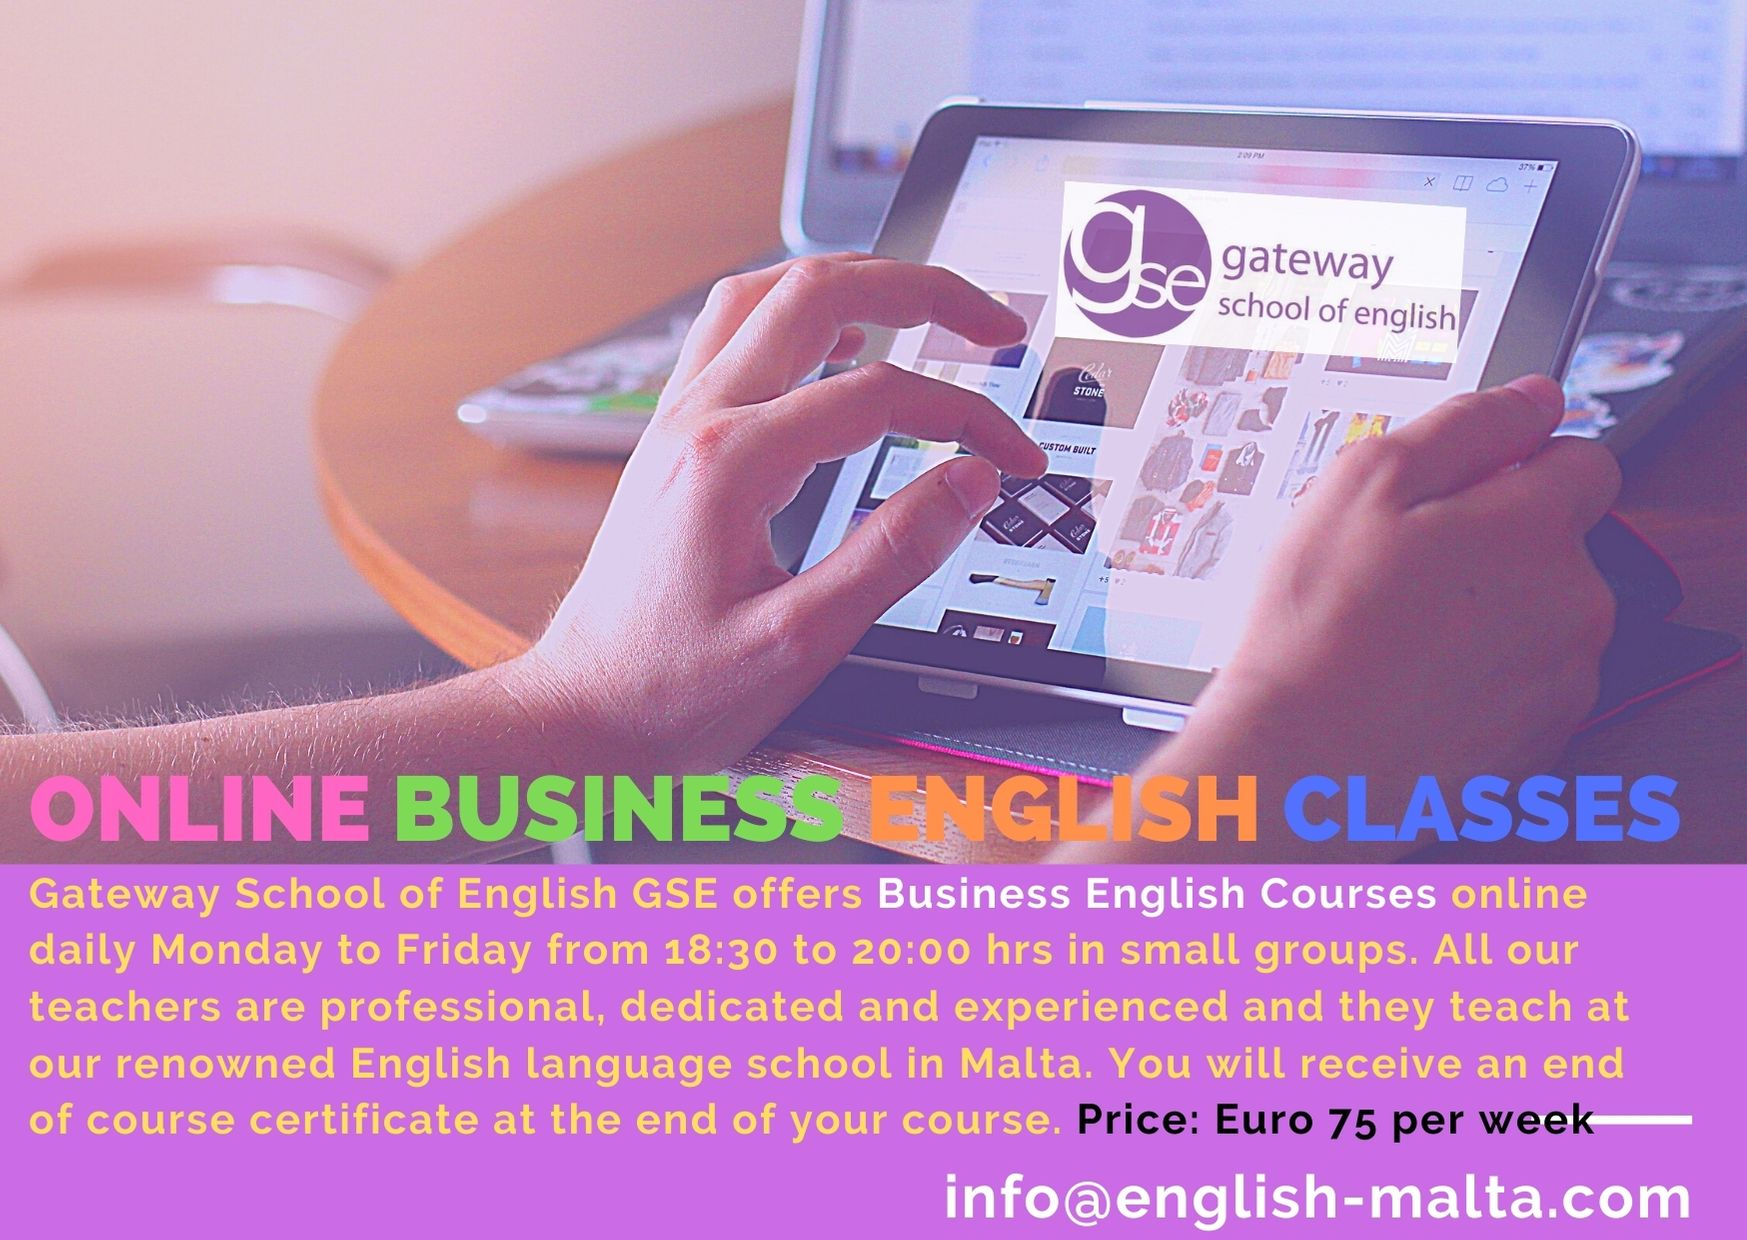 Online Business English classes with Gateway School of English GSE